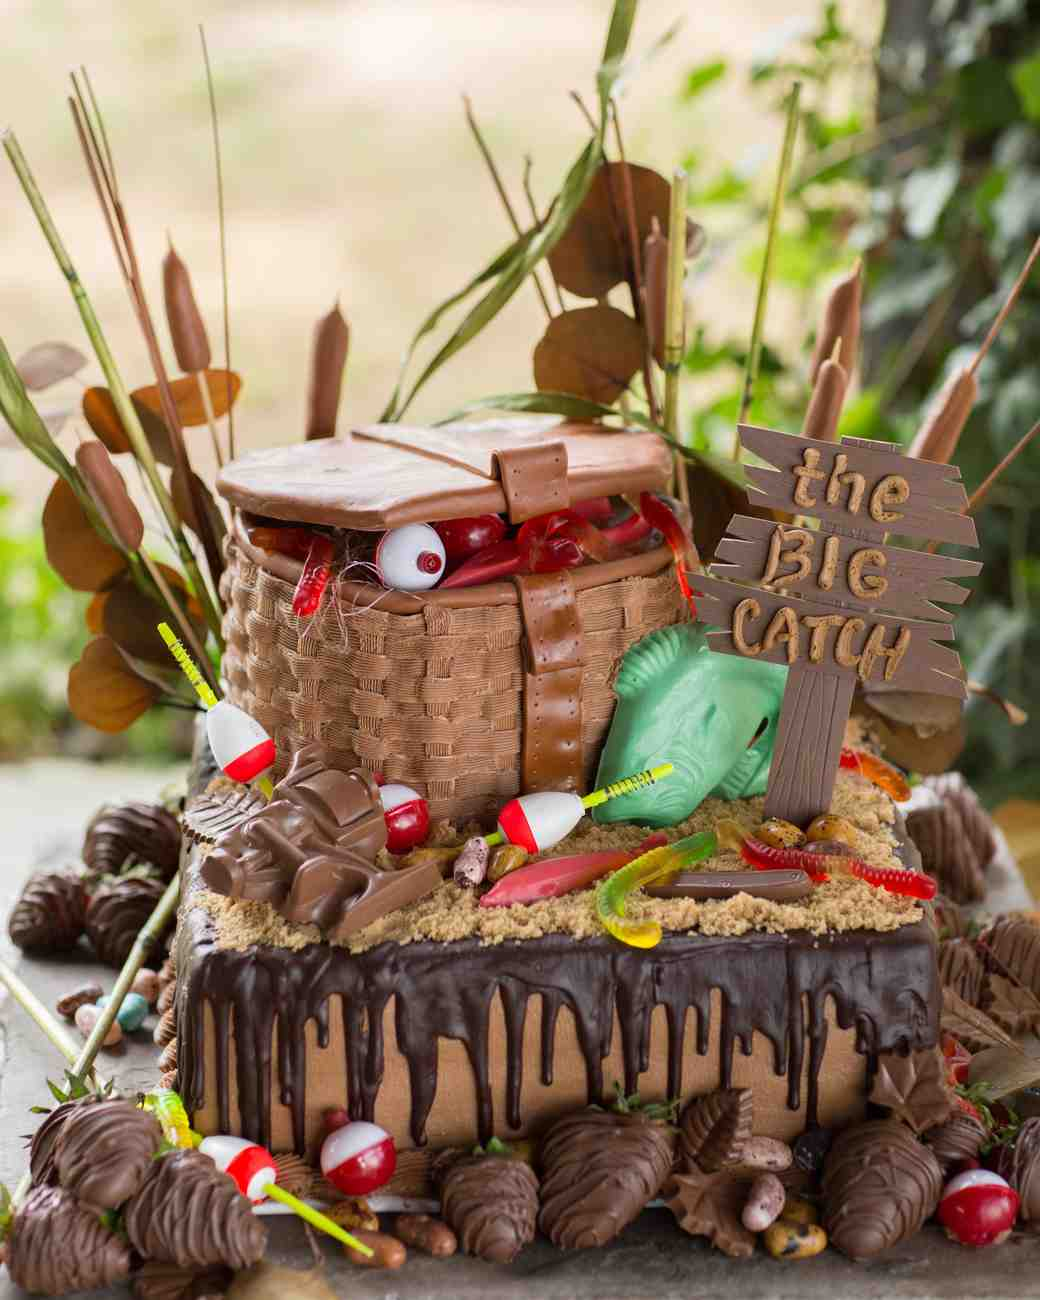 24 Unique Ideas For The Groom S Cake Martha Stewart Weddings